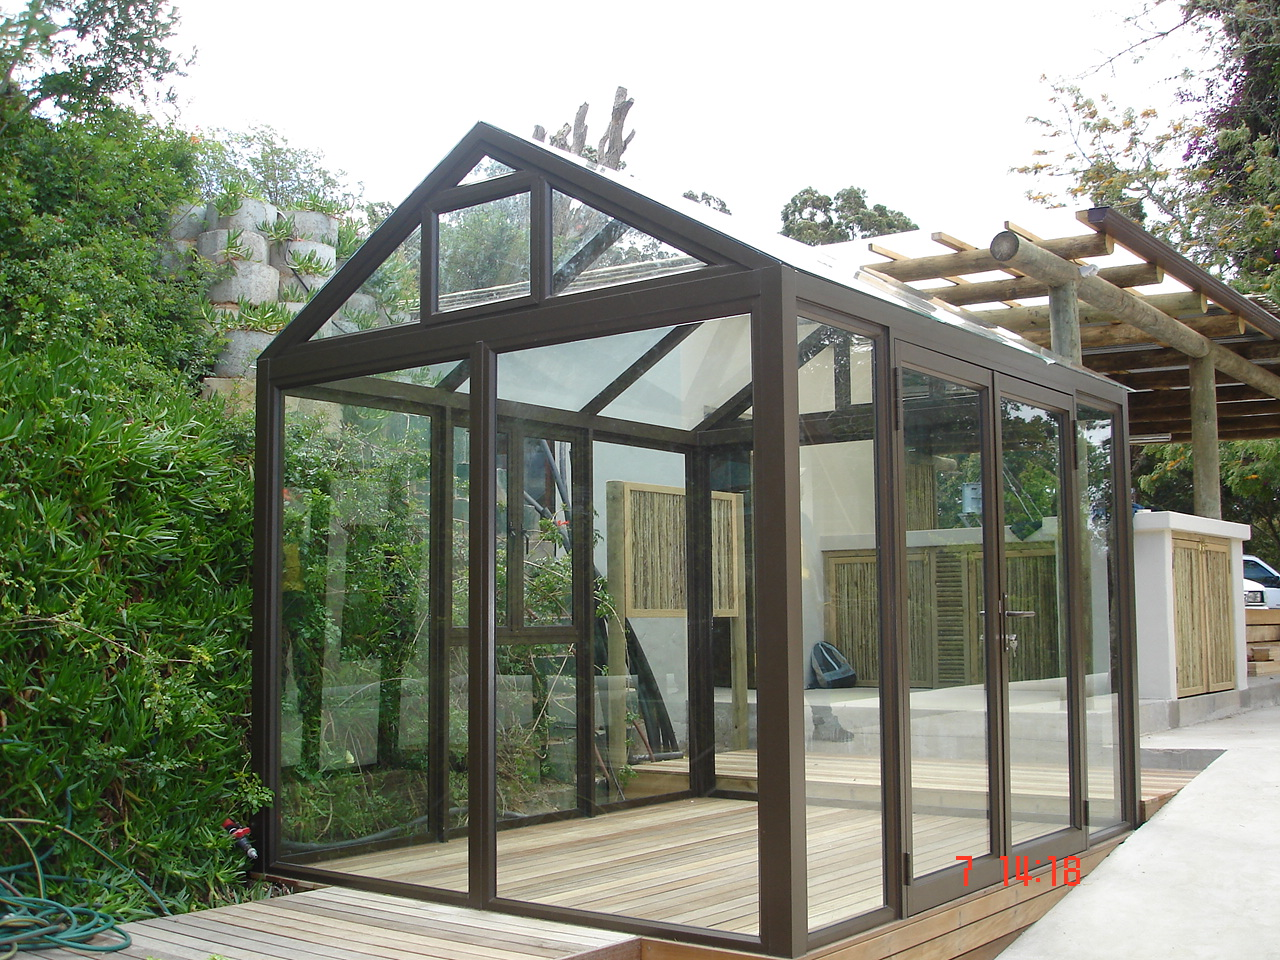 Sun Rooms-http://www.allport.co.za